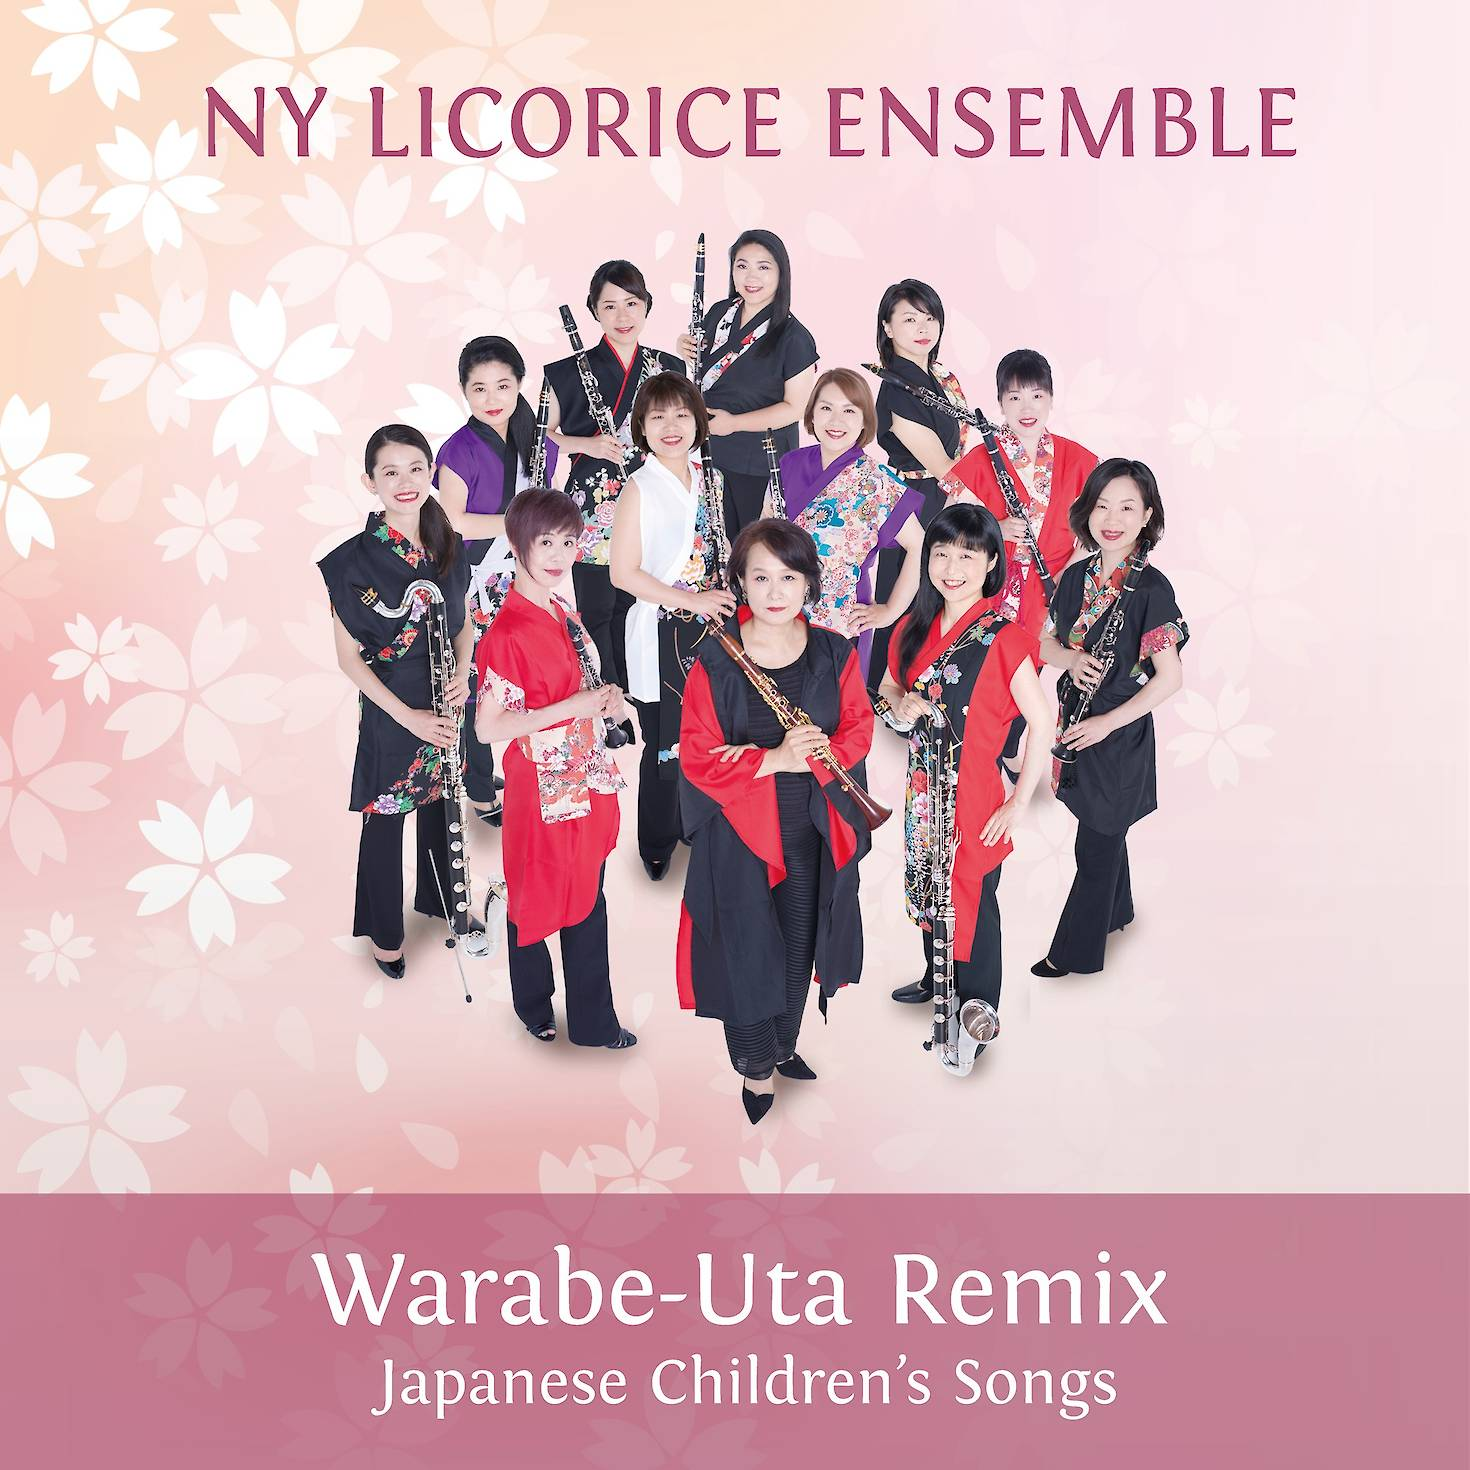 NY Licorice Ensemble: Warabe-Uta Remix cover